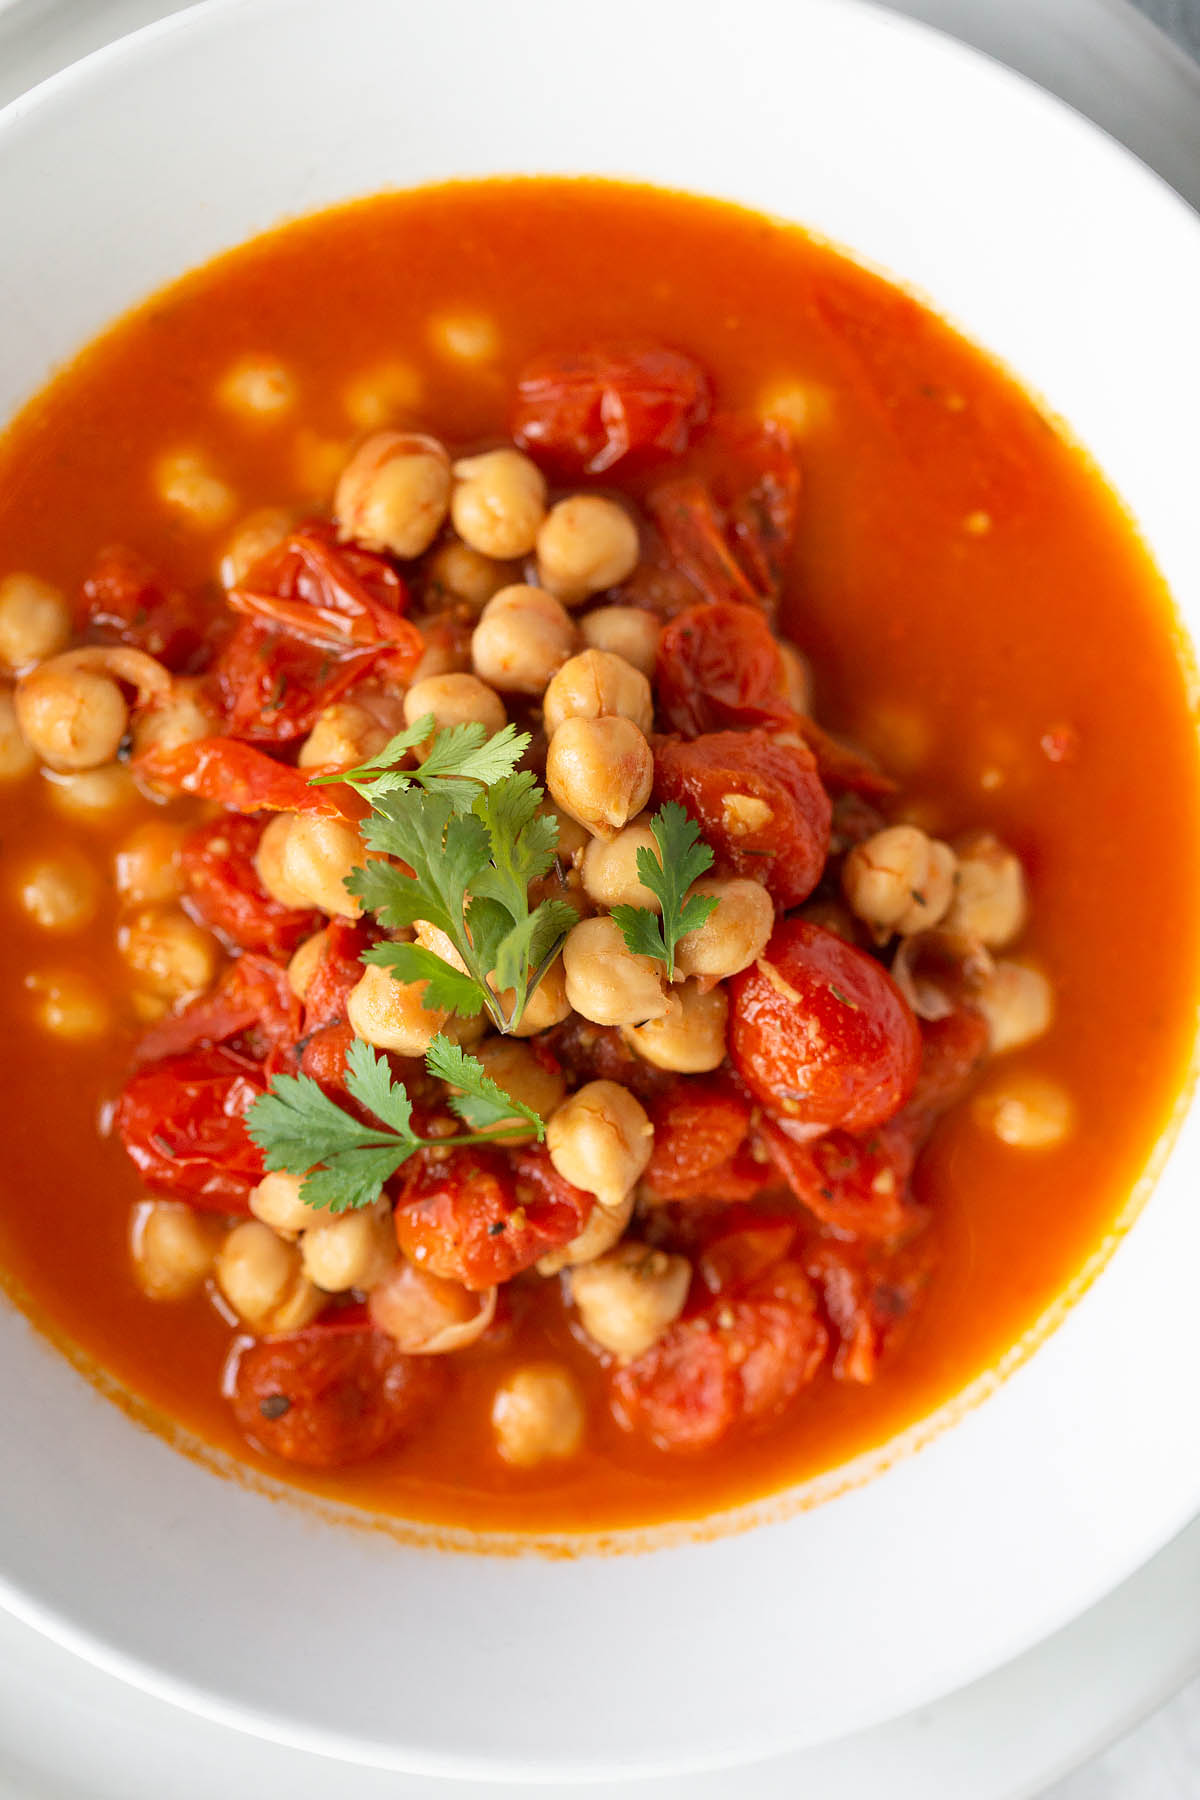 chickpea stew up close